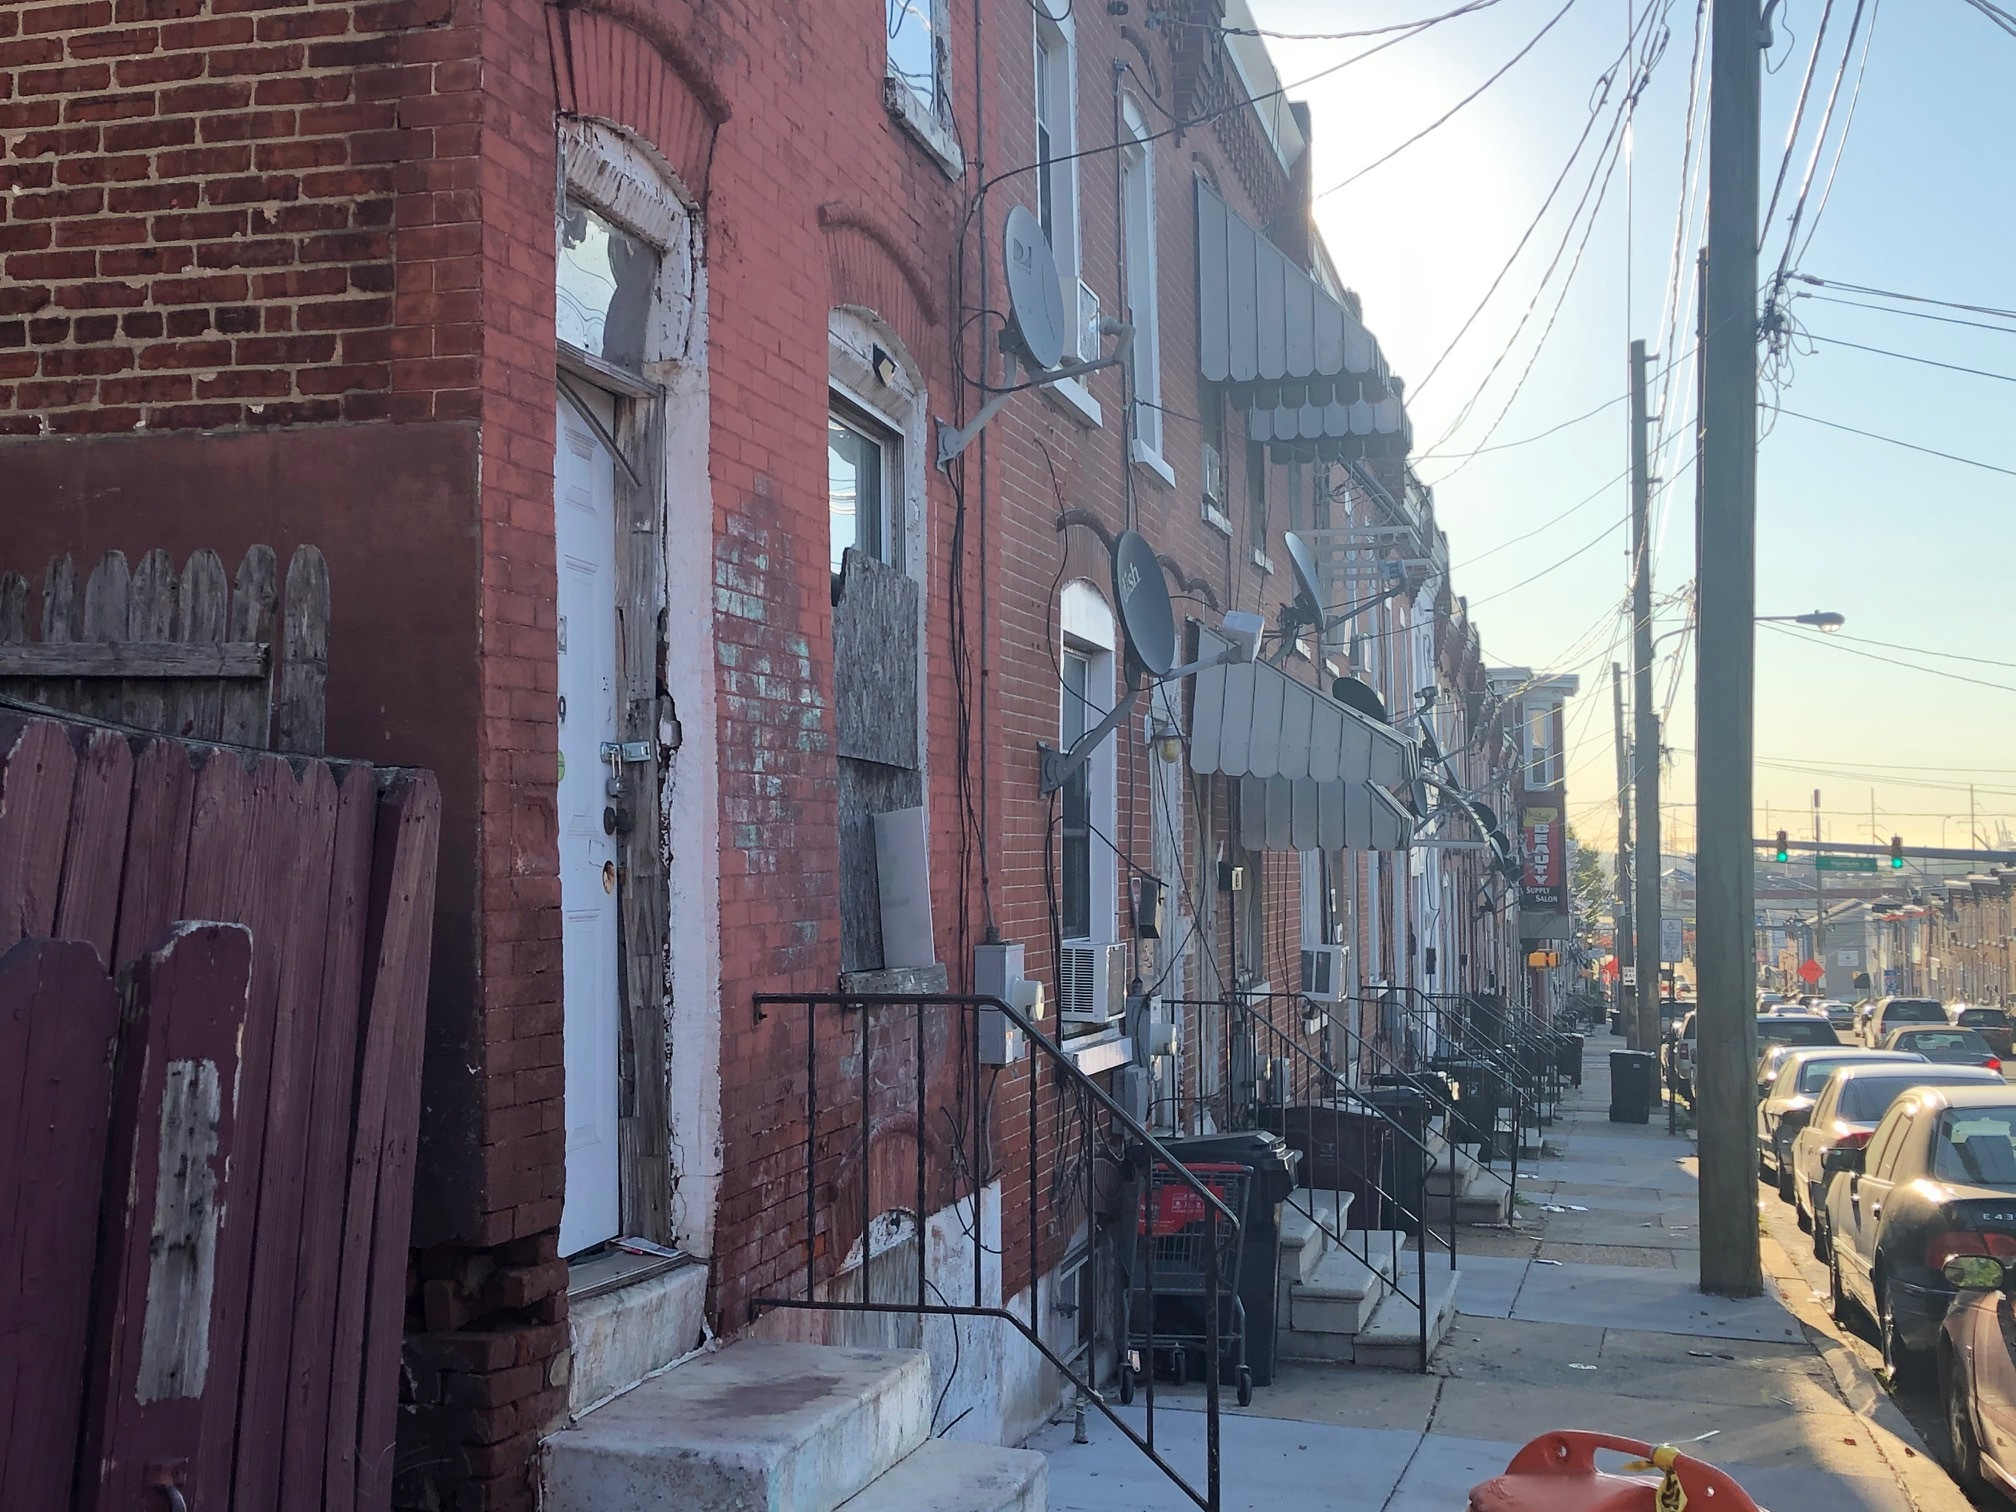 Another defeat for Wilmington blight bill targeting 'irresponsible' landlords